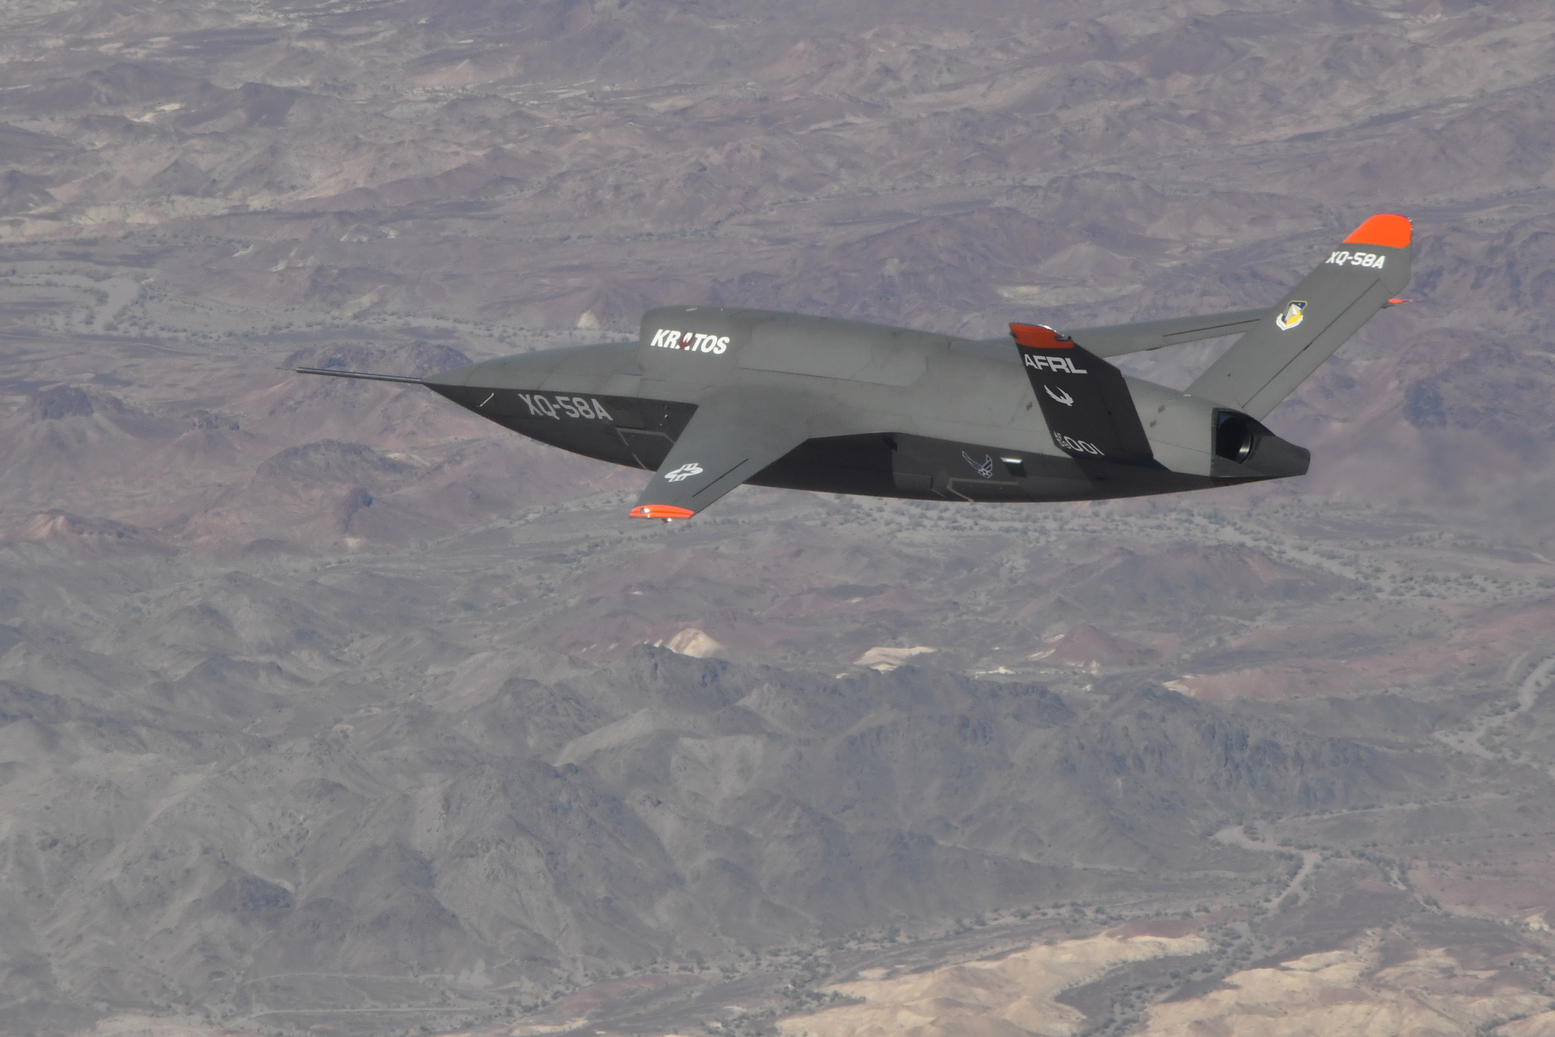 The Air Force's Secret, Stealthy XQ-58 Valkyrie Drone Keeps Making